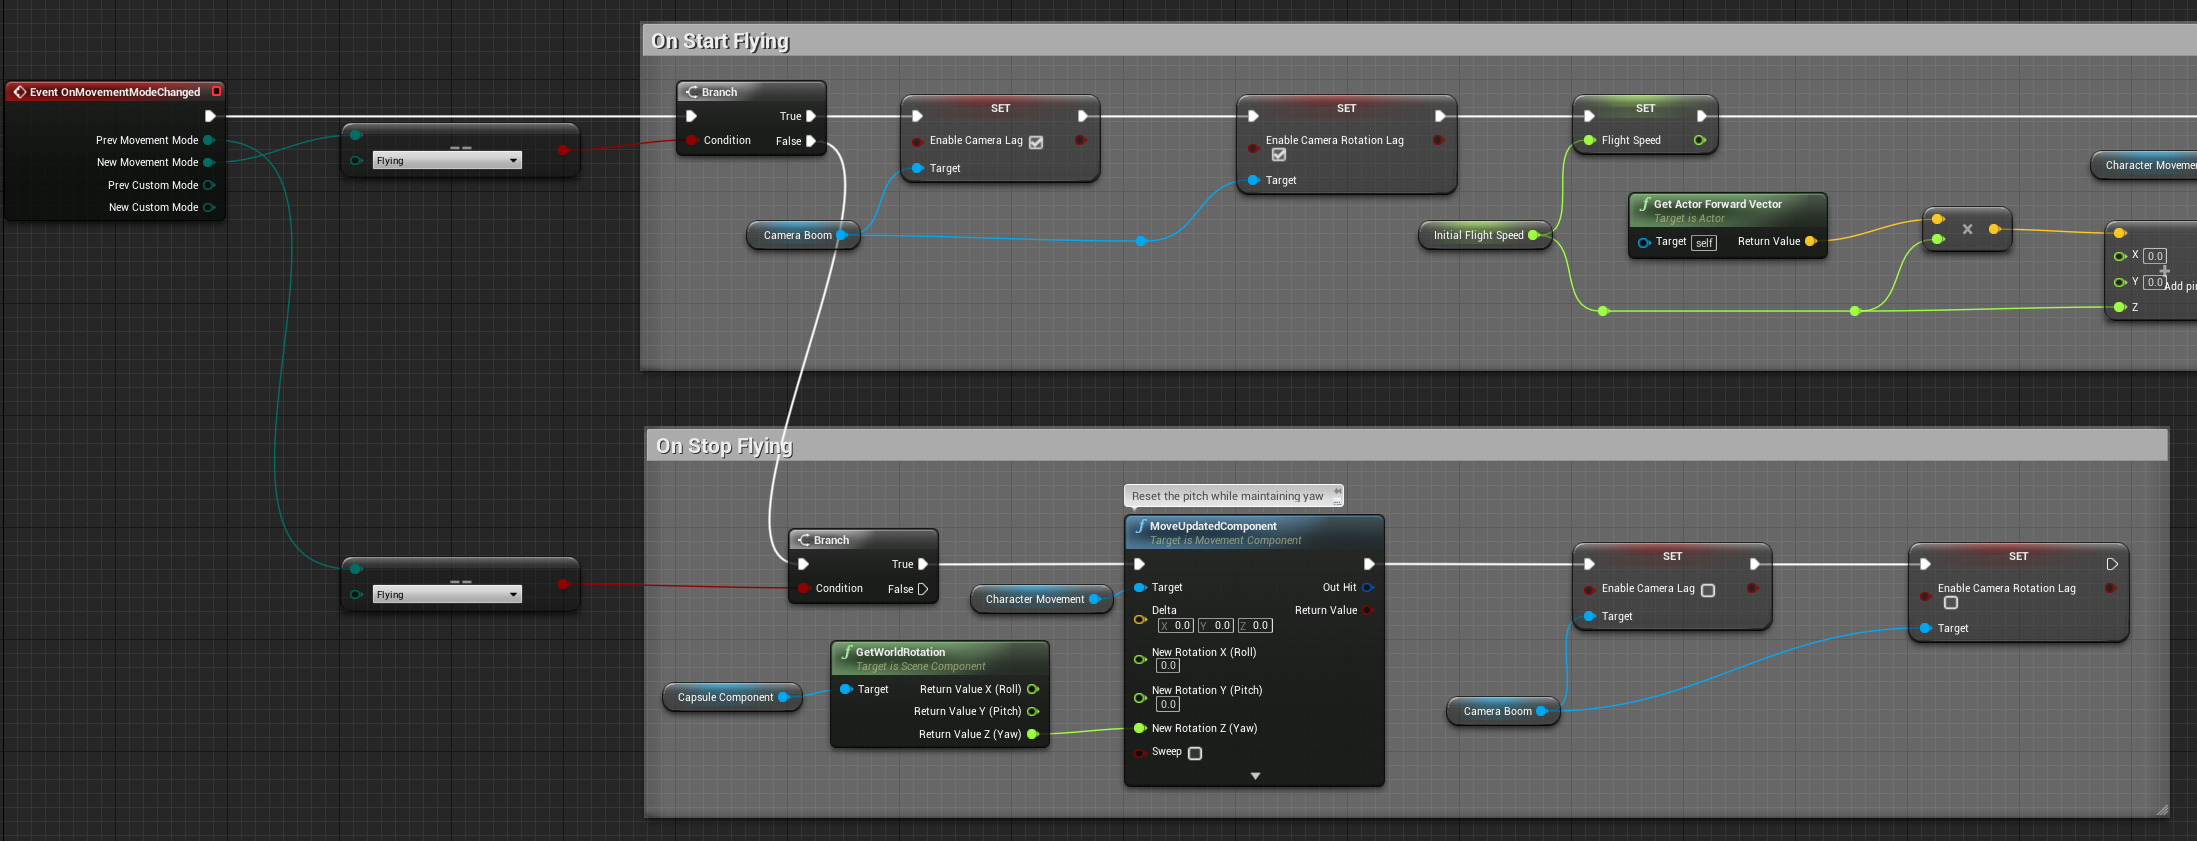 UE4Editor 2018-01-25 14-02-55.png